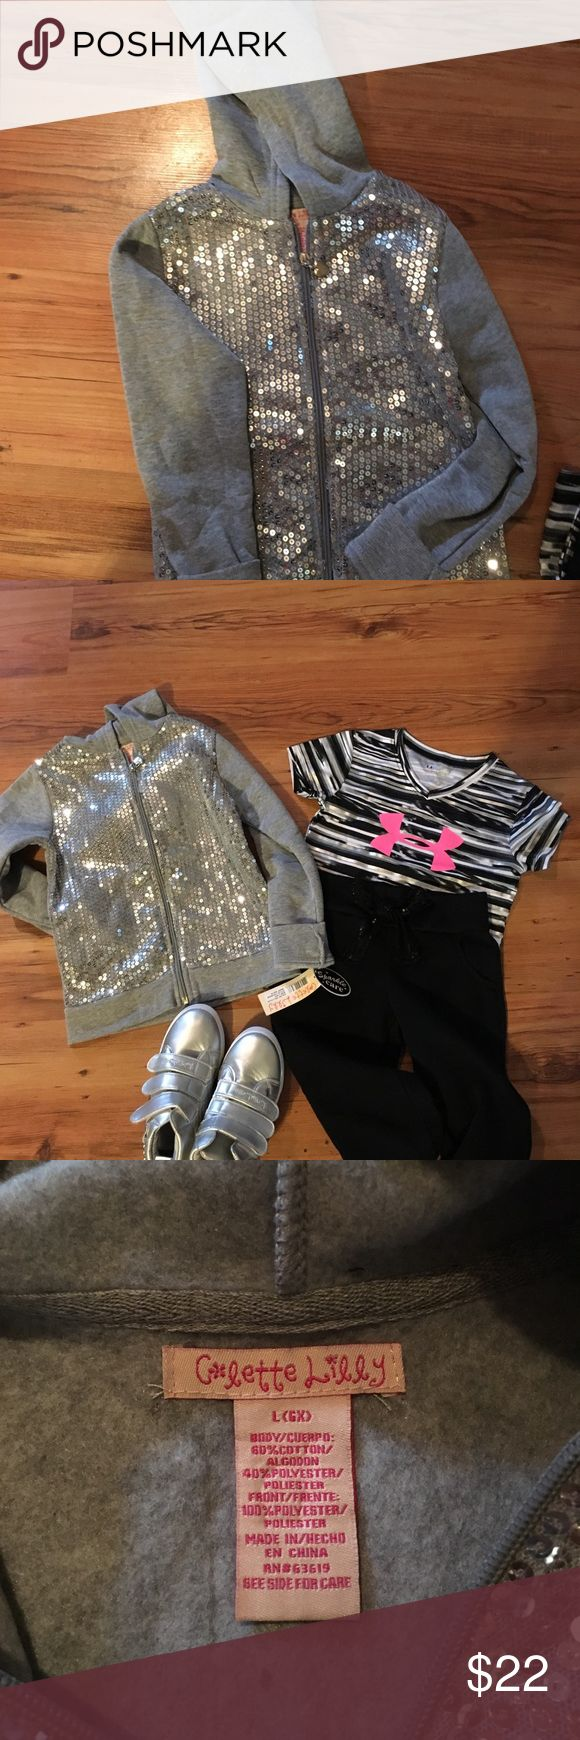 Colette Lilly sequin fleece Girls Gray sequin fleece jacket..brand new with tags..size 6x large..perfect for Christmas present..2nd pic items sold separately..love to bundle Jackets & Coats